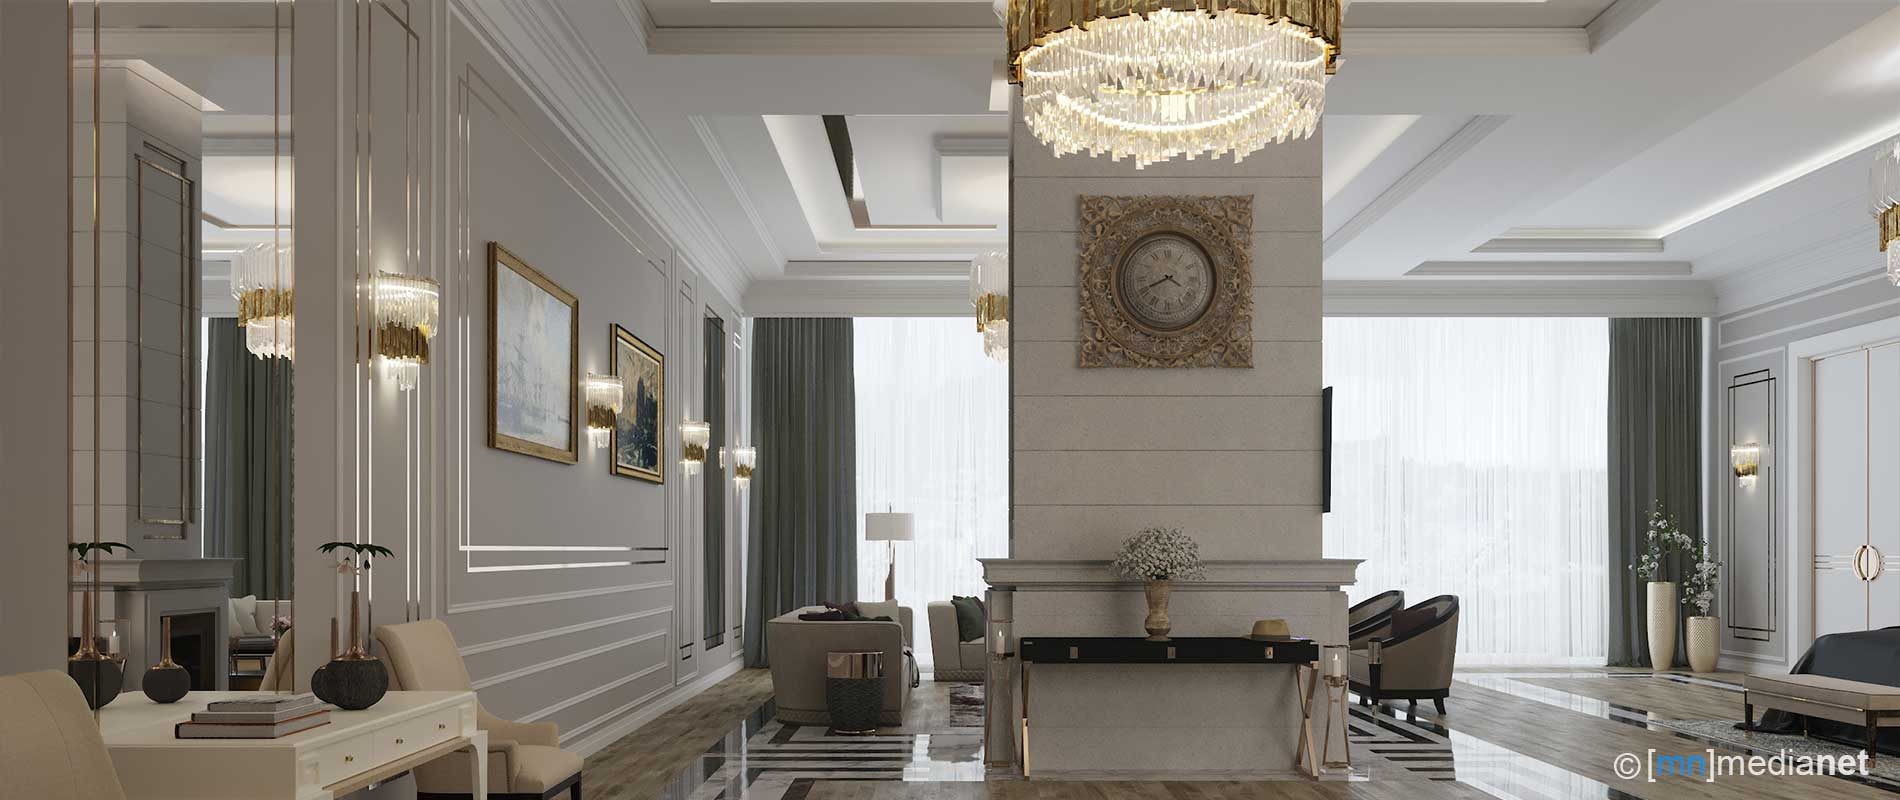 Lighting modern curtains full view open view bedroom design for private house interior architect designs complete decor